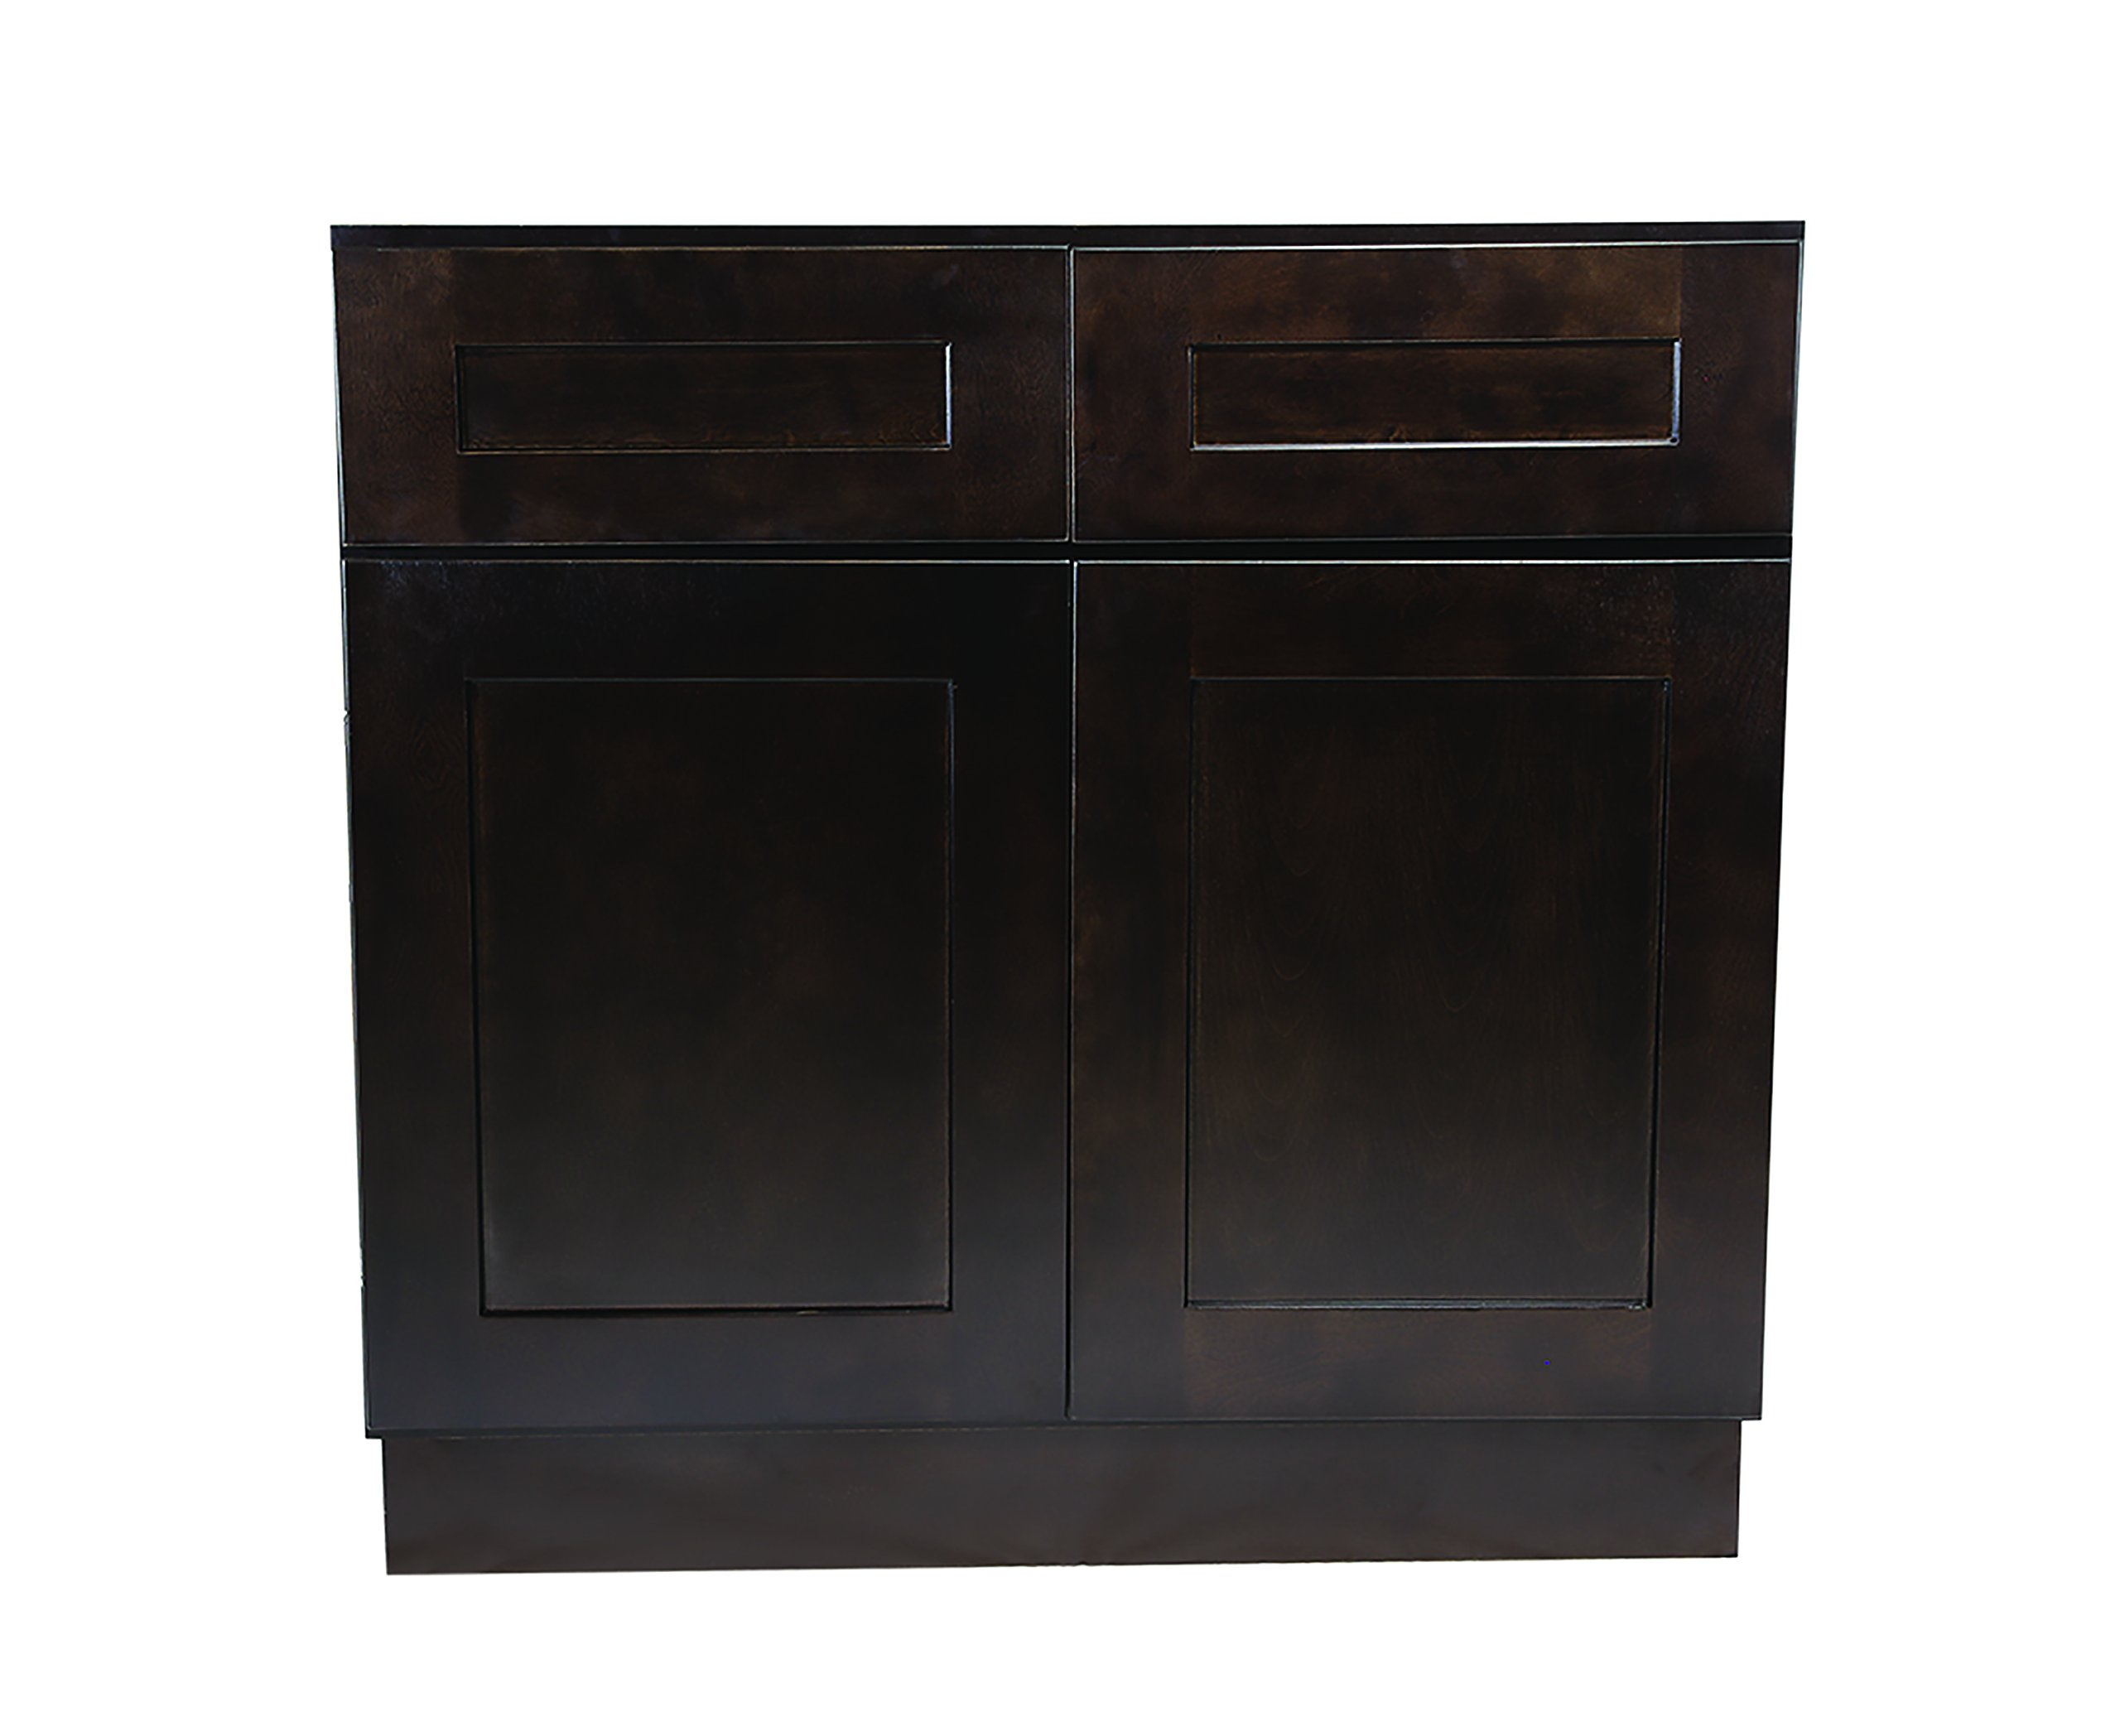 Design House 561993 Brookings 36-Inch Base Cabinet, Espresso Shaker by Design House